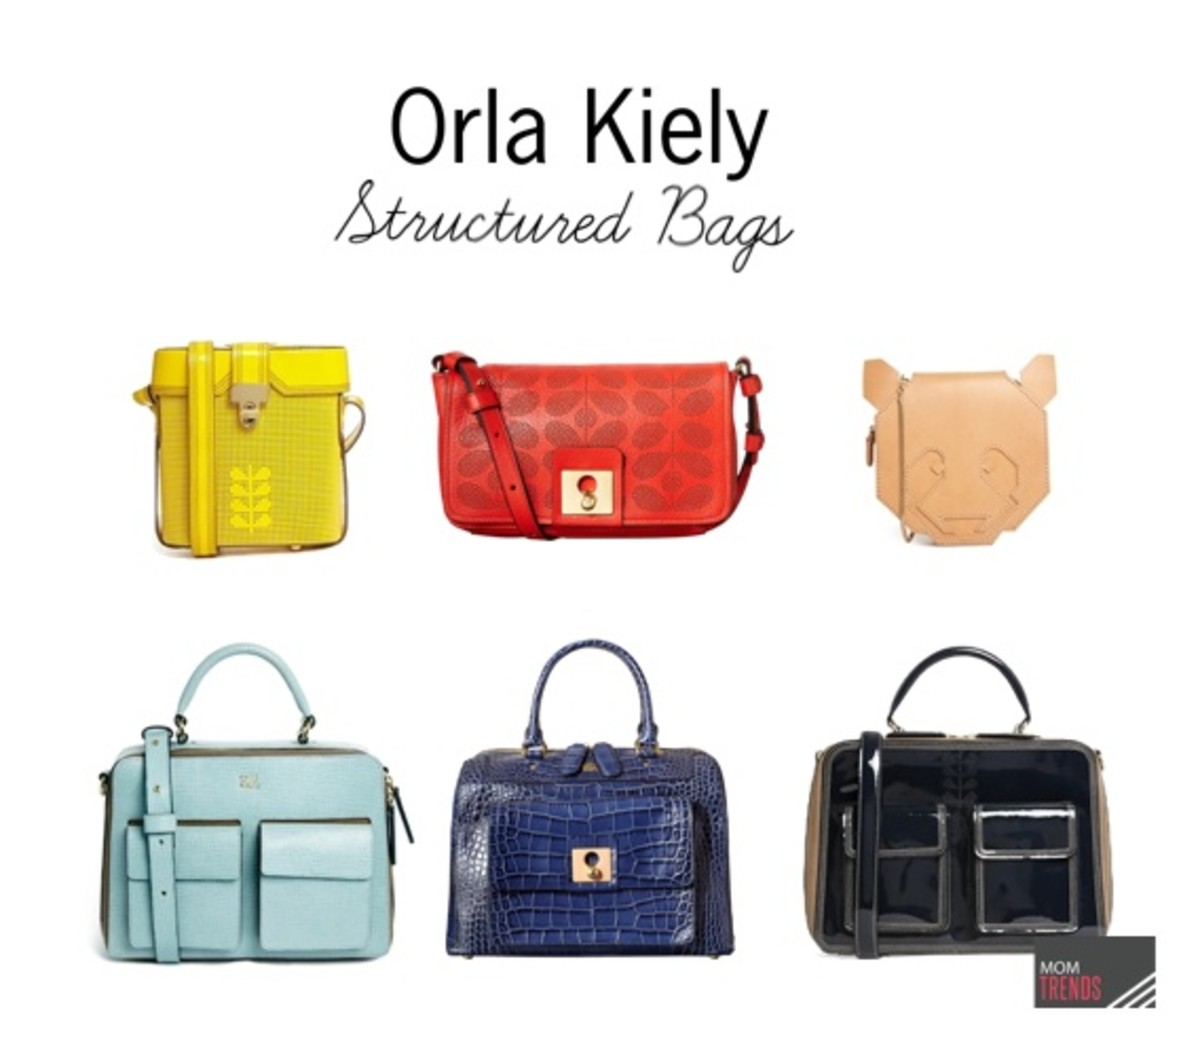 Orla Kiely Structured Bags